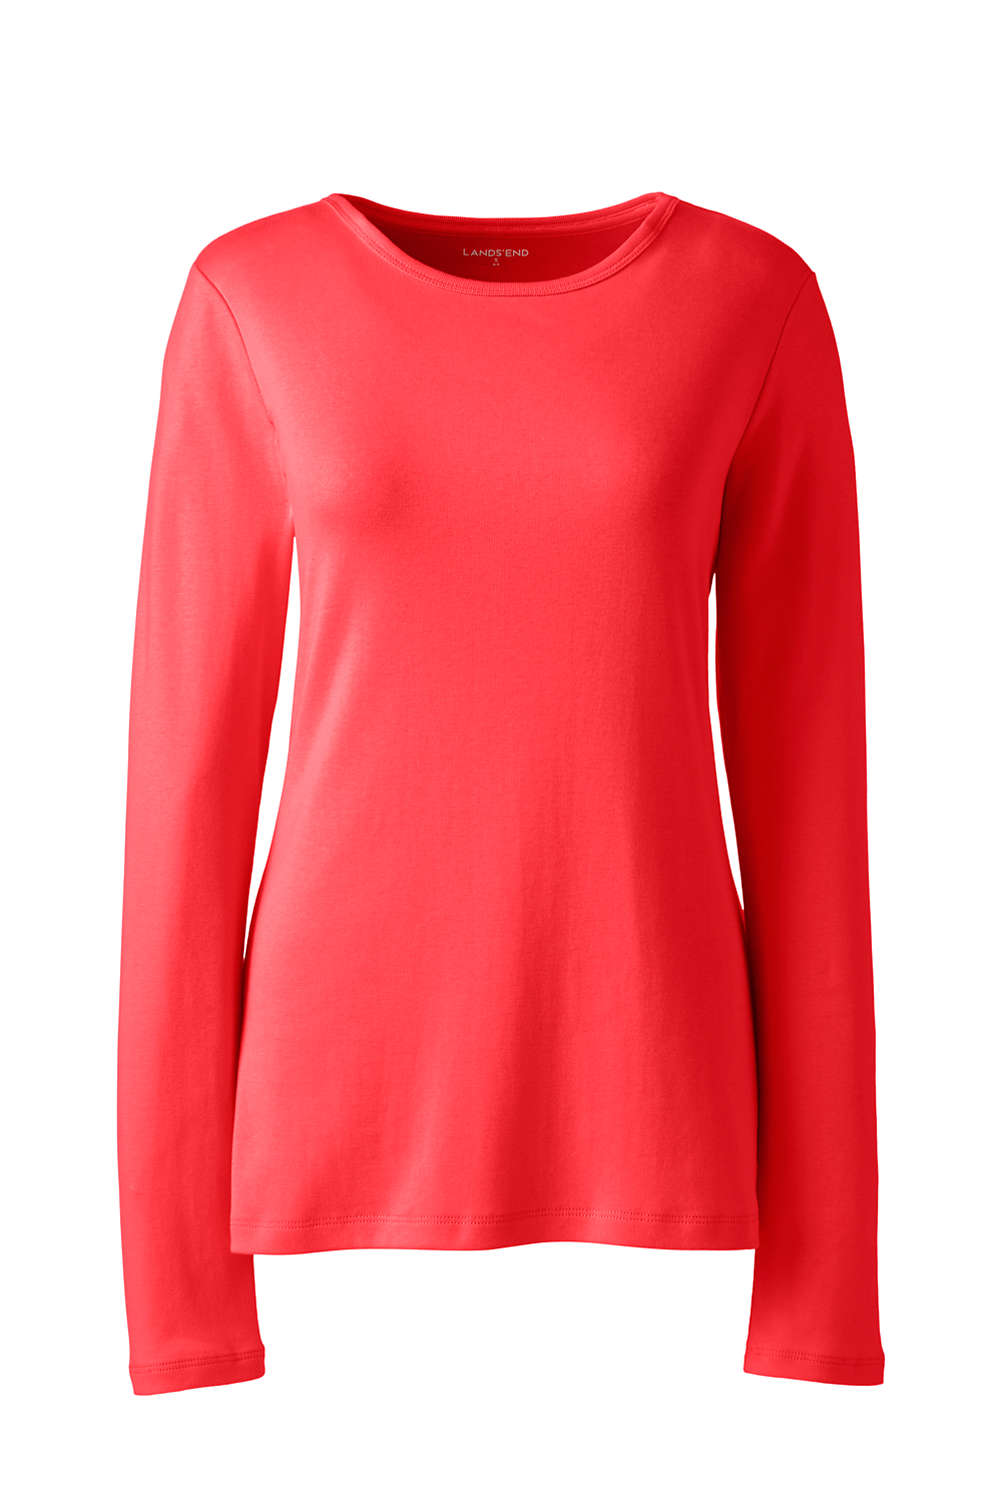 6a48aa51585 Women s All Cotton Long Sleeve T-Shirt - Rib Knit Crewneck from ...